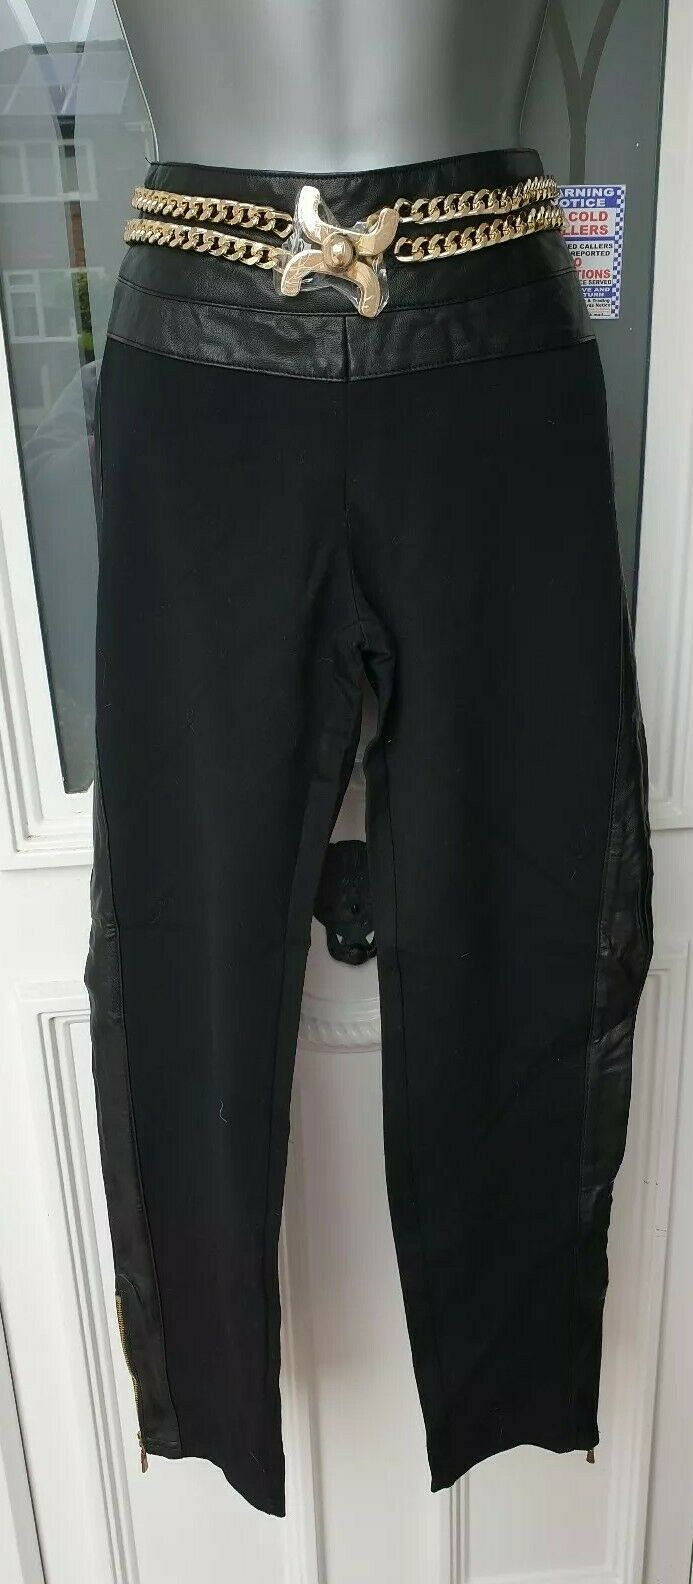 Poesse Trousers Xl beautiful on Größe xl made in italy sorry pics dont do justice